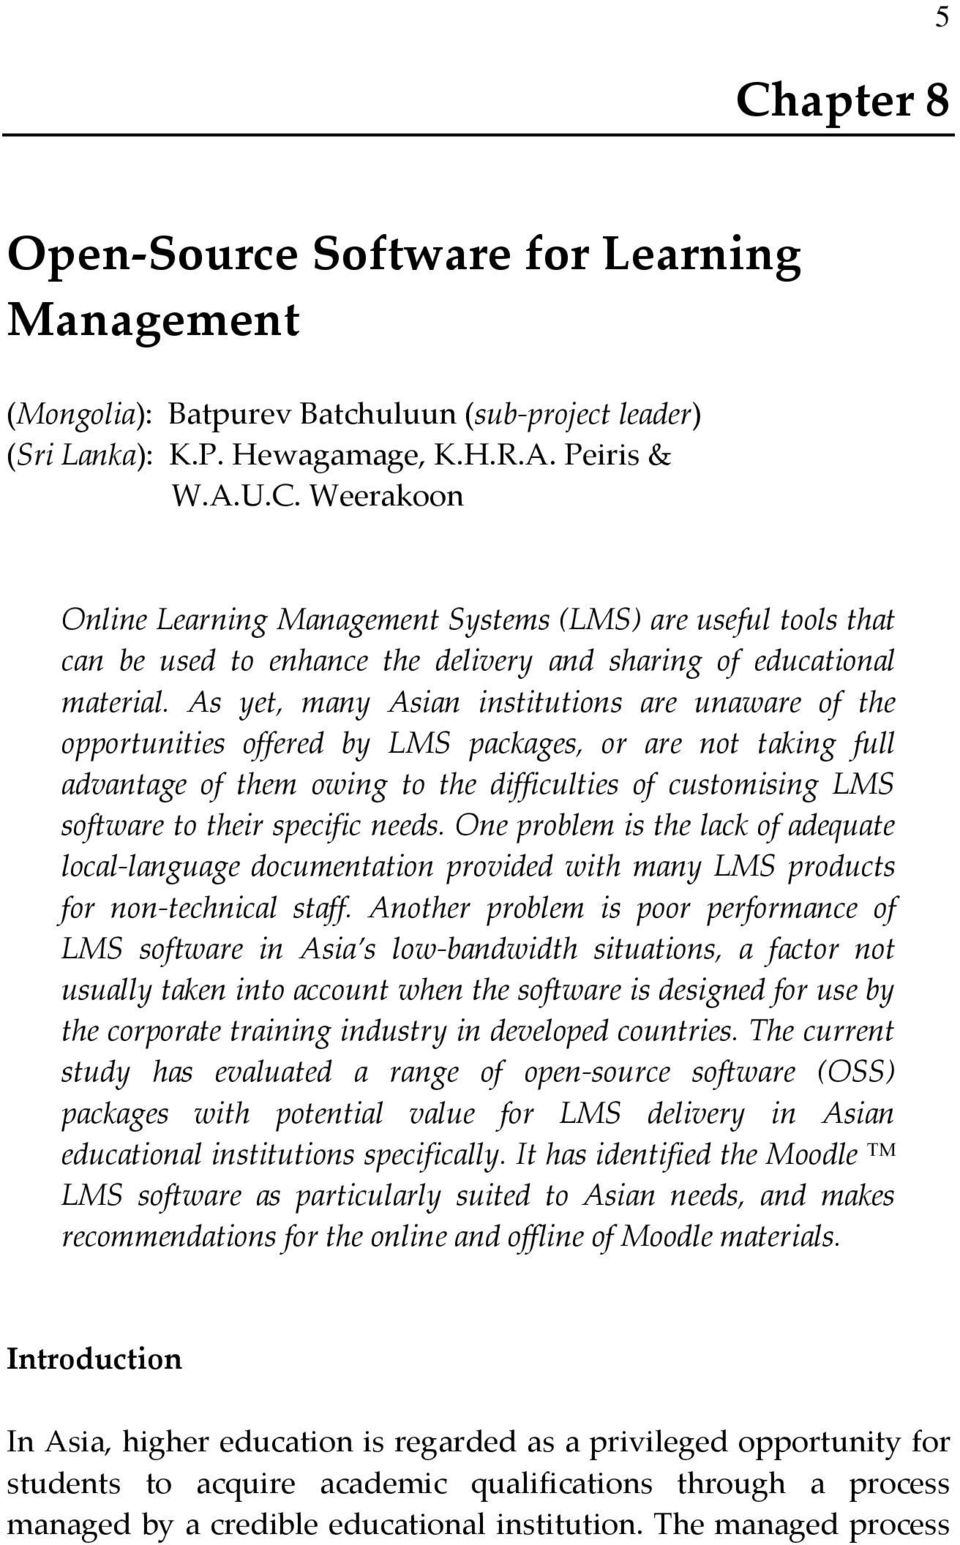 specific needs. One problem is the lack of adequate local-language documentation provided with many LMS products for non-technical staff.